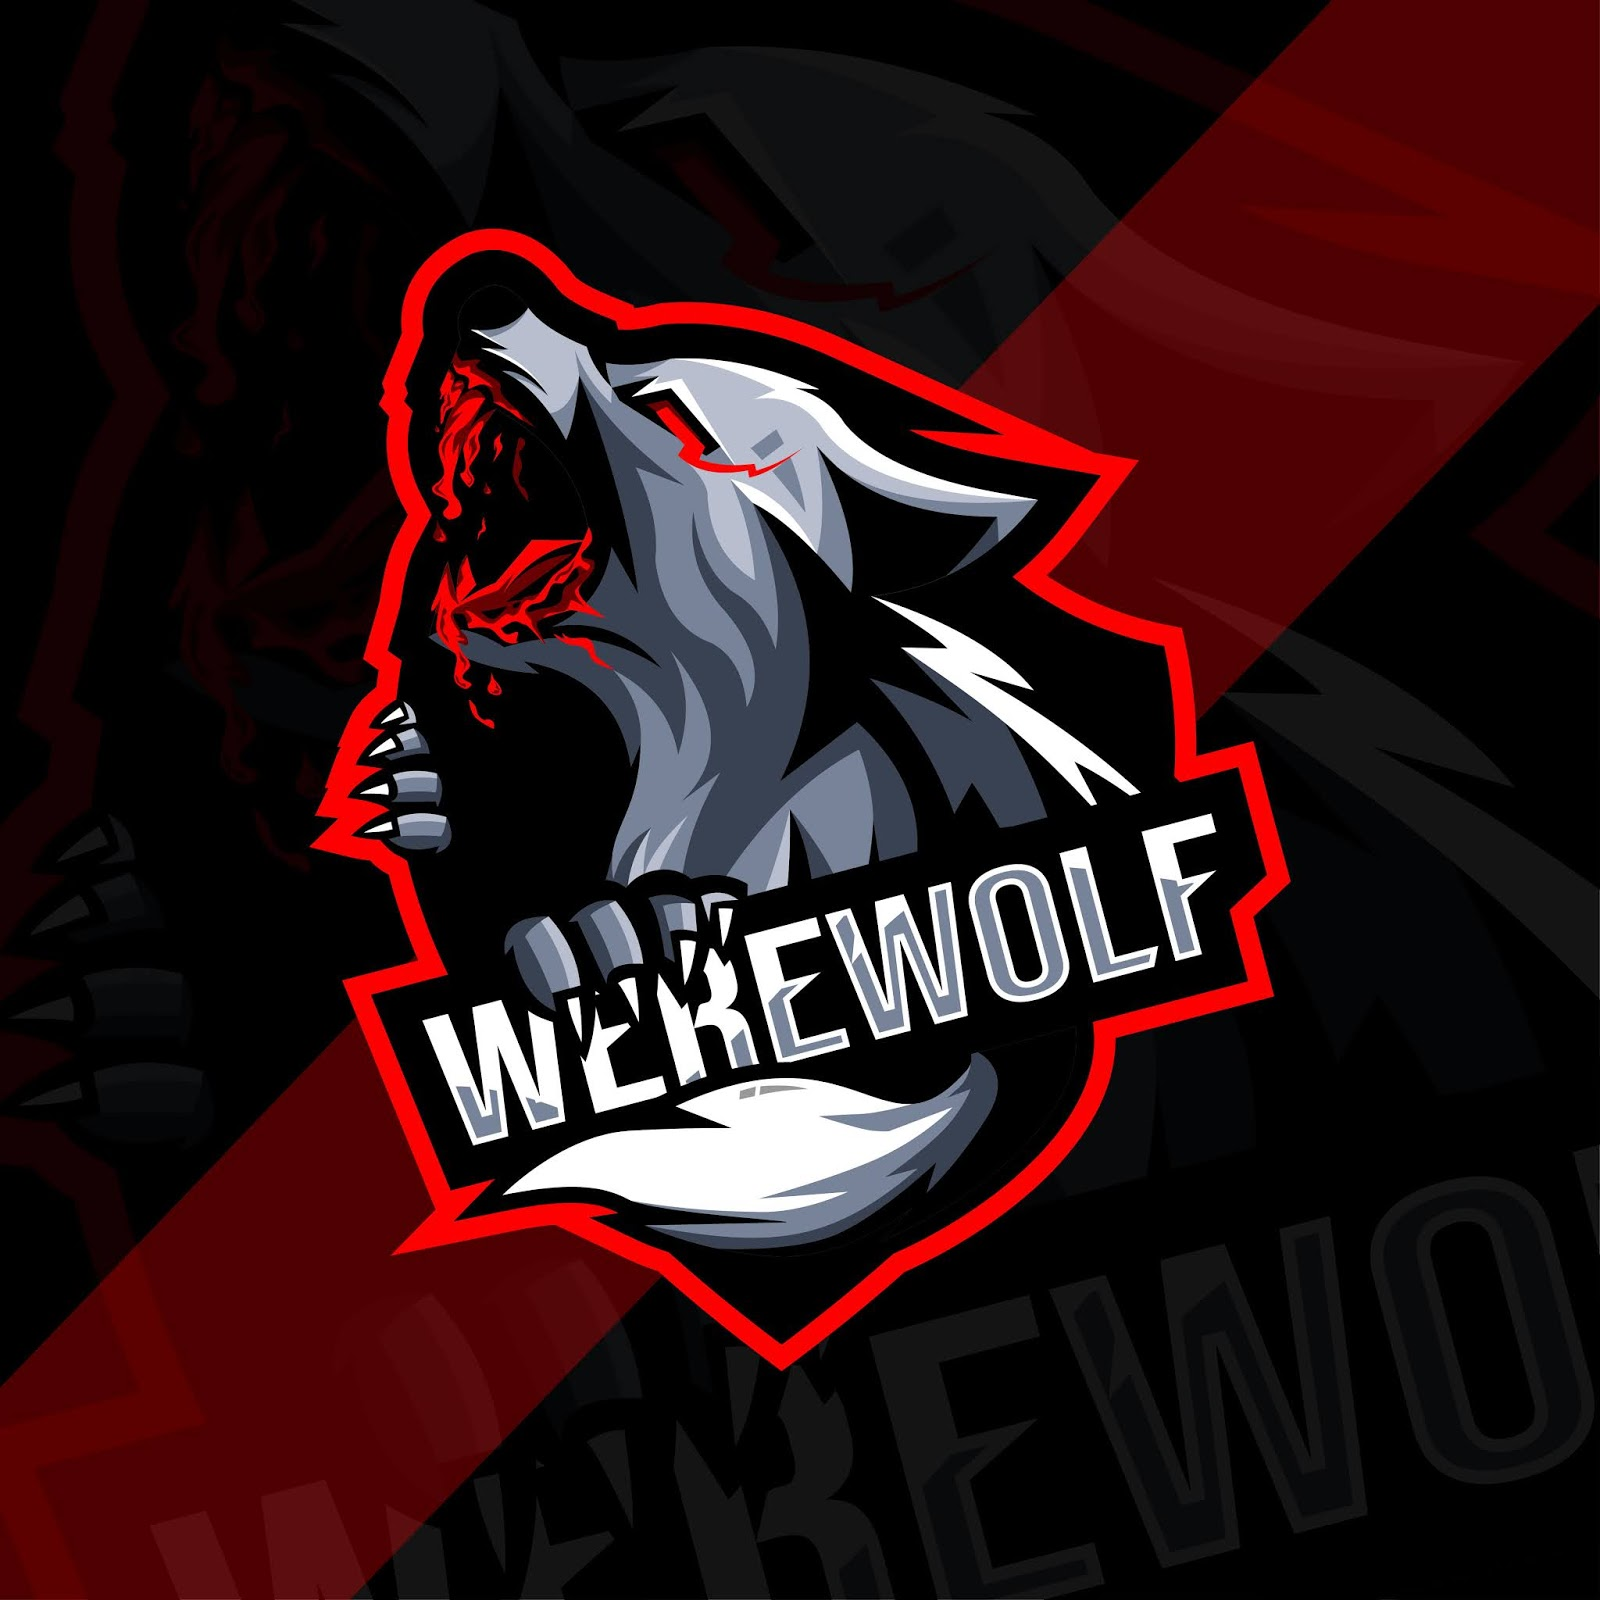 Angry Werewolf Mascot Logo Esport Template Free Download Vector CDR, AI, EPS and PNG Formats